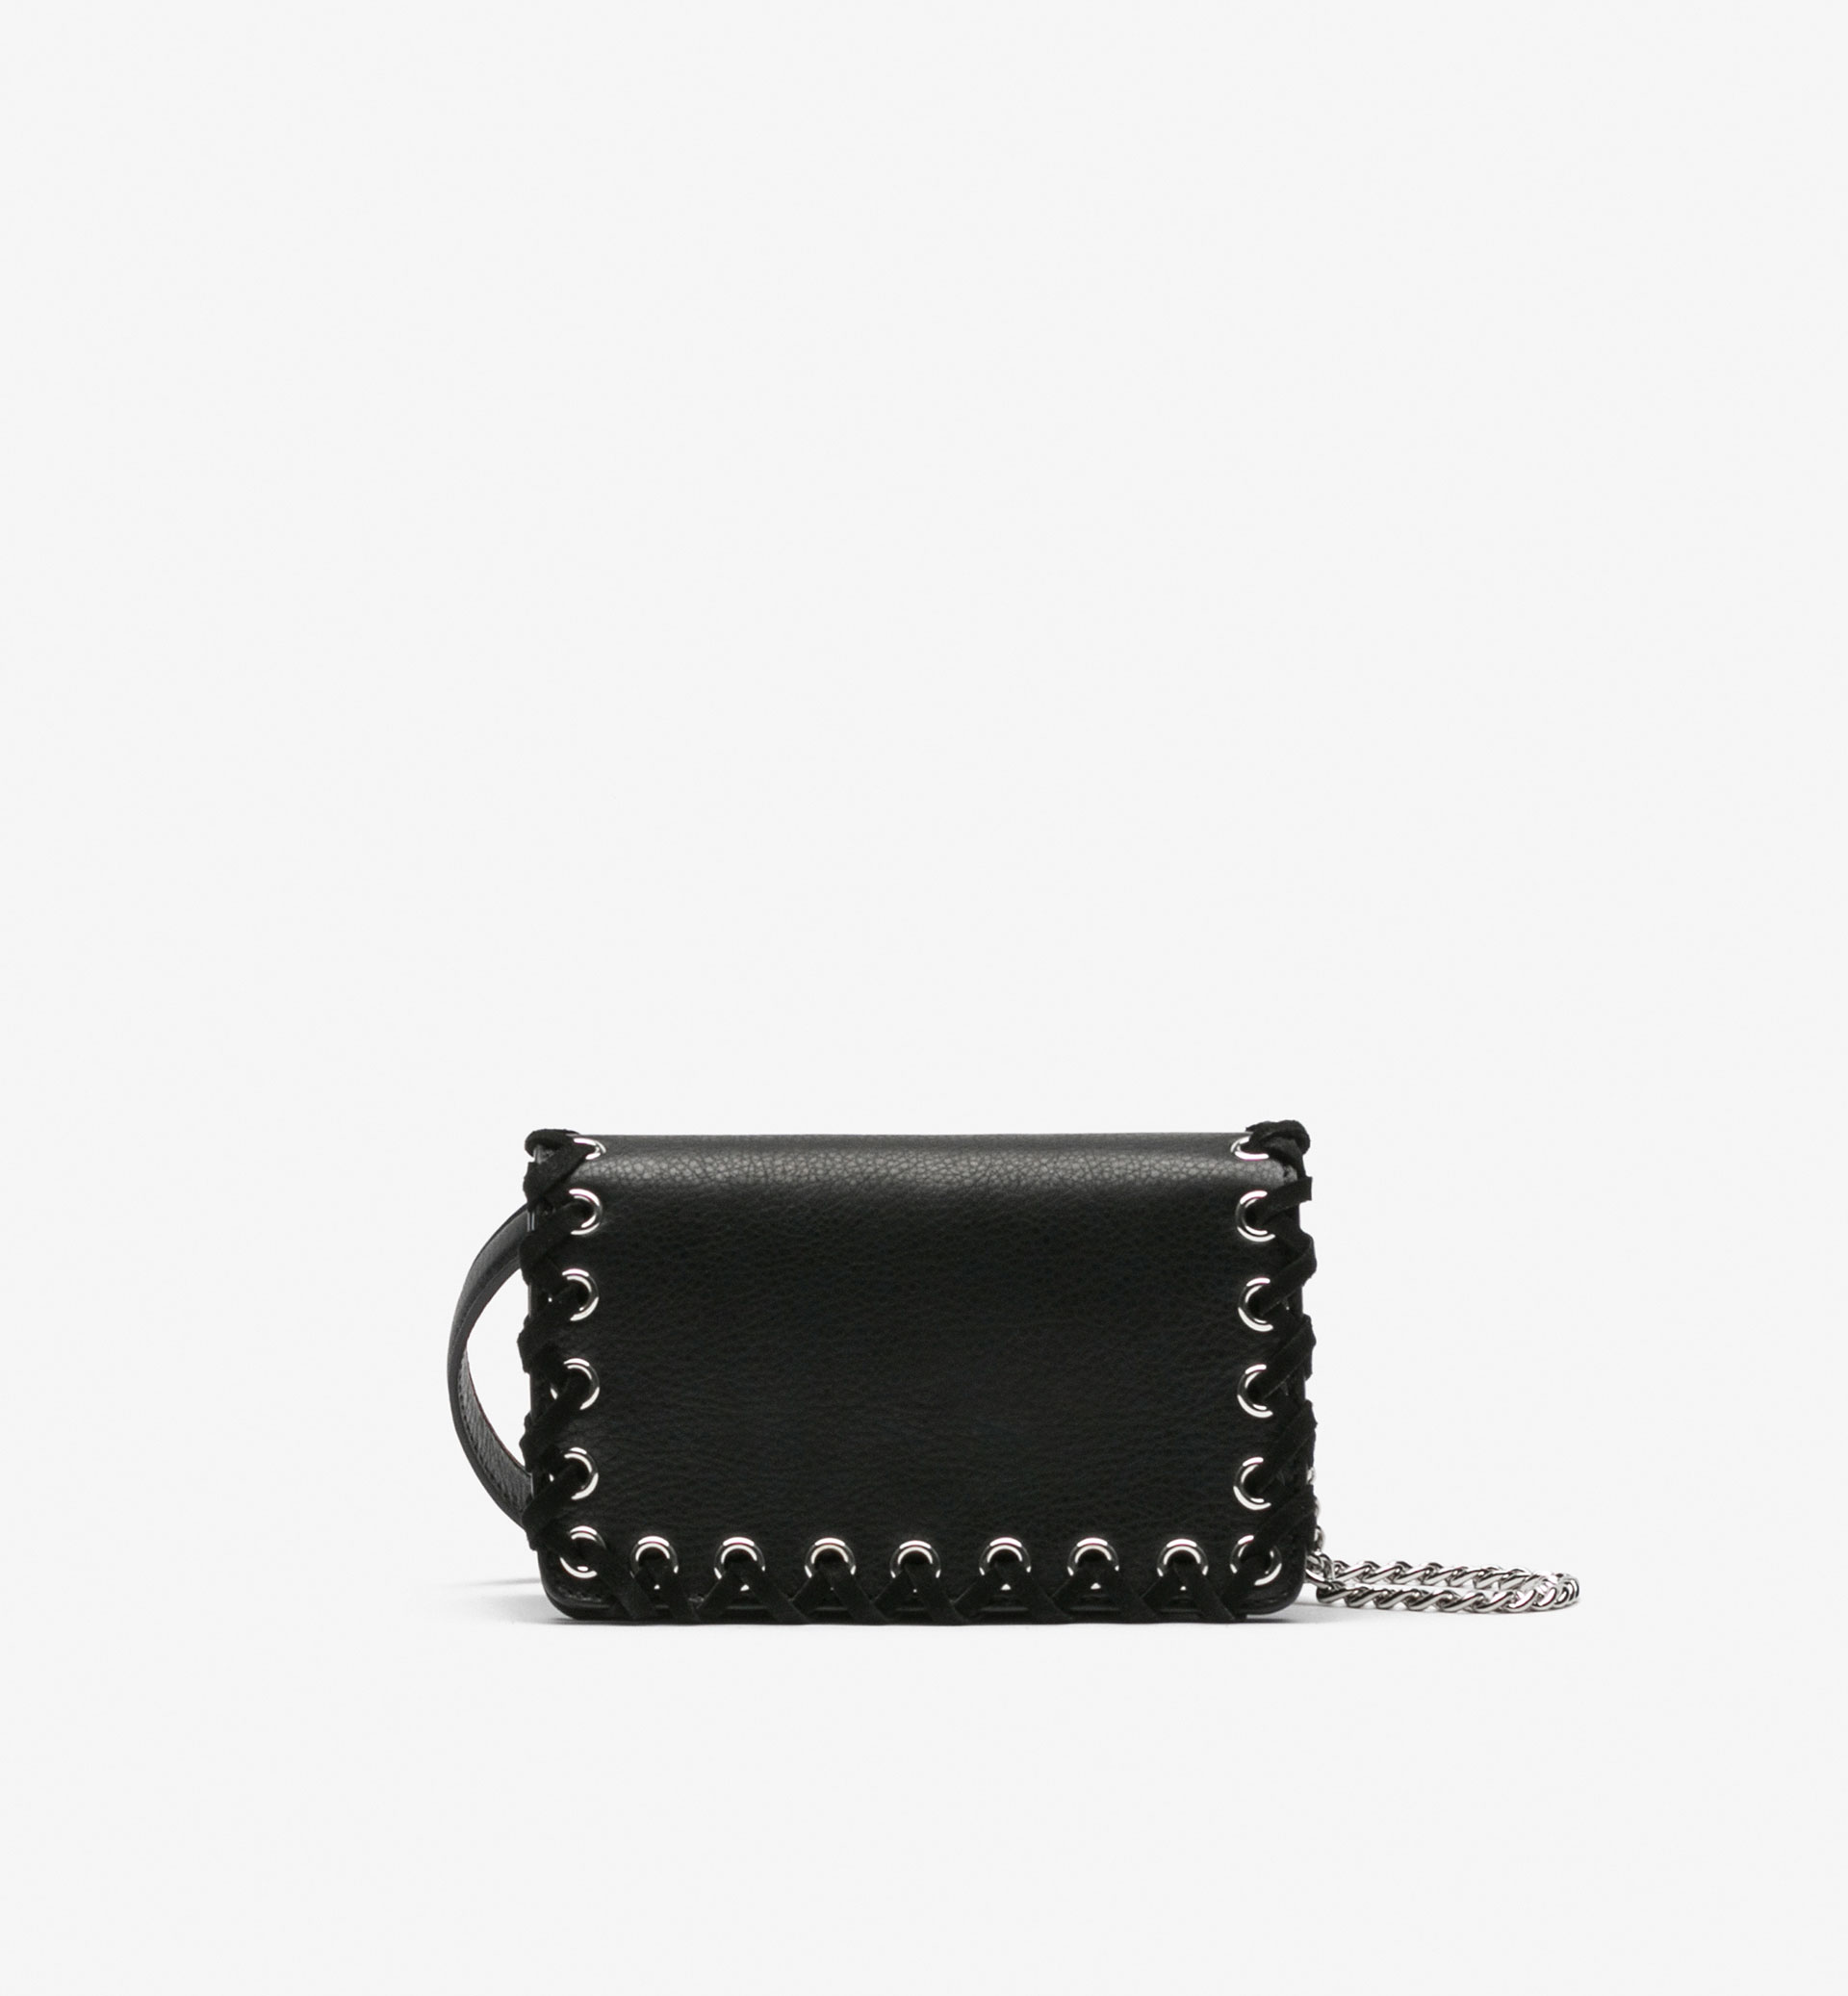 MINI CROSSBODY BAG WITH STITCHING DETAIL